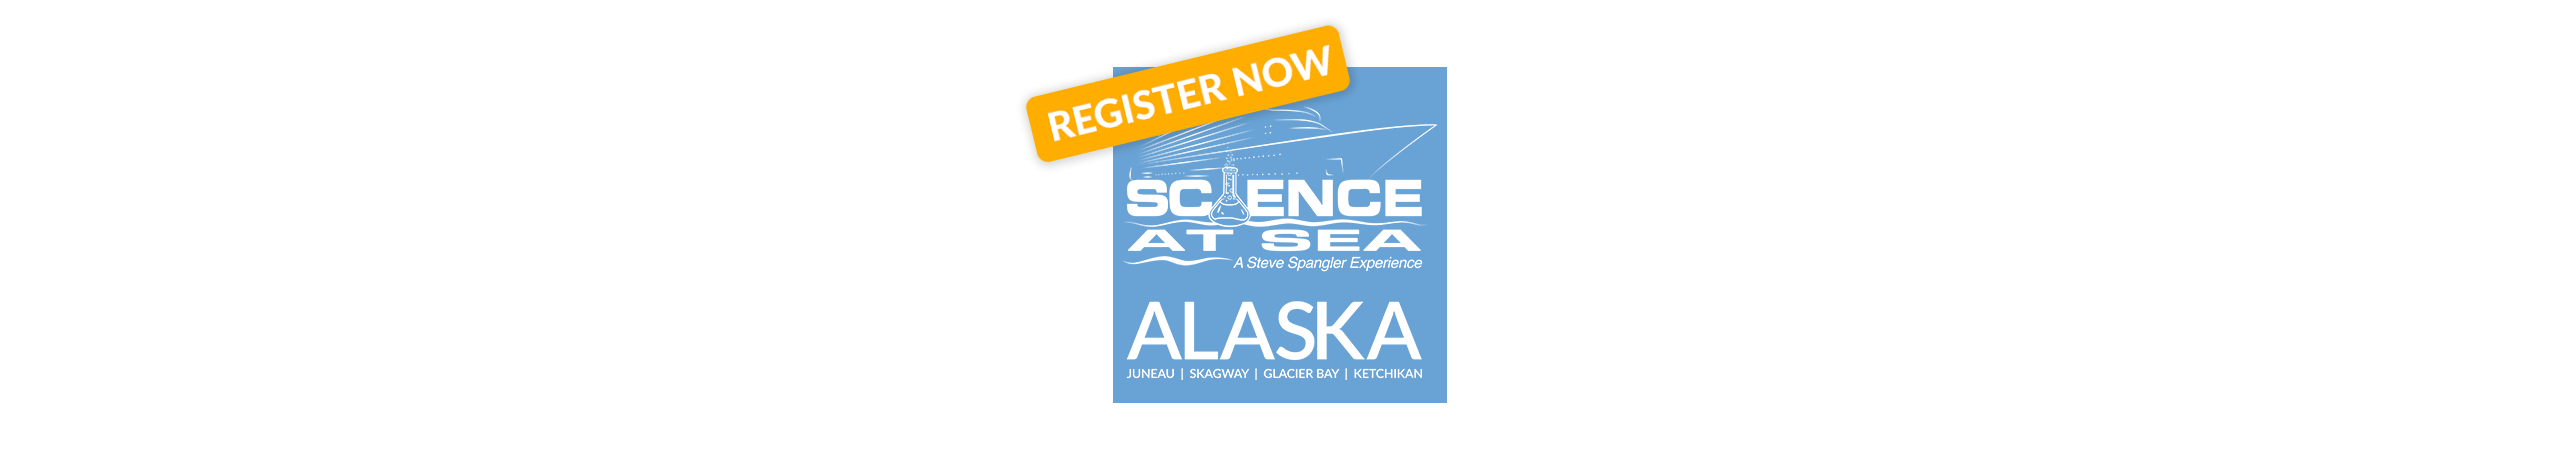 Science at Sea 2020 Register Now